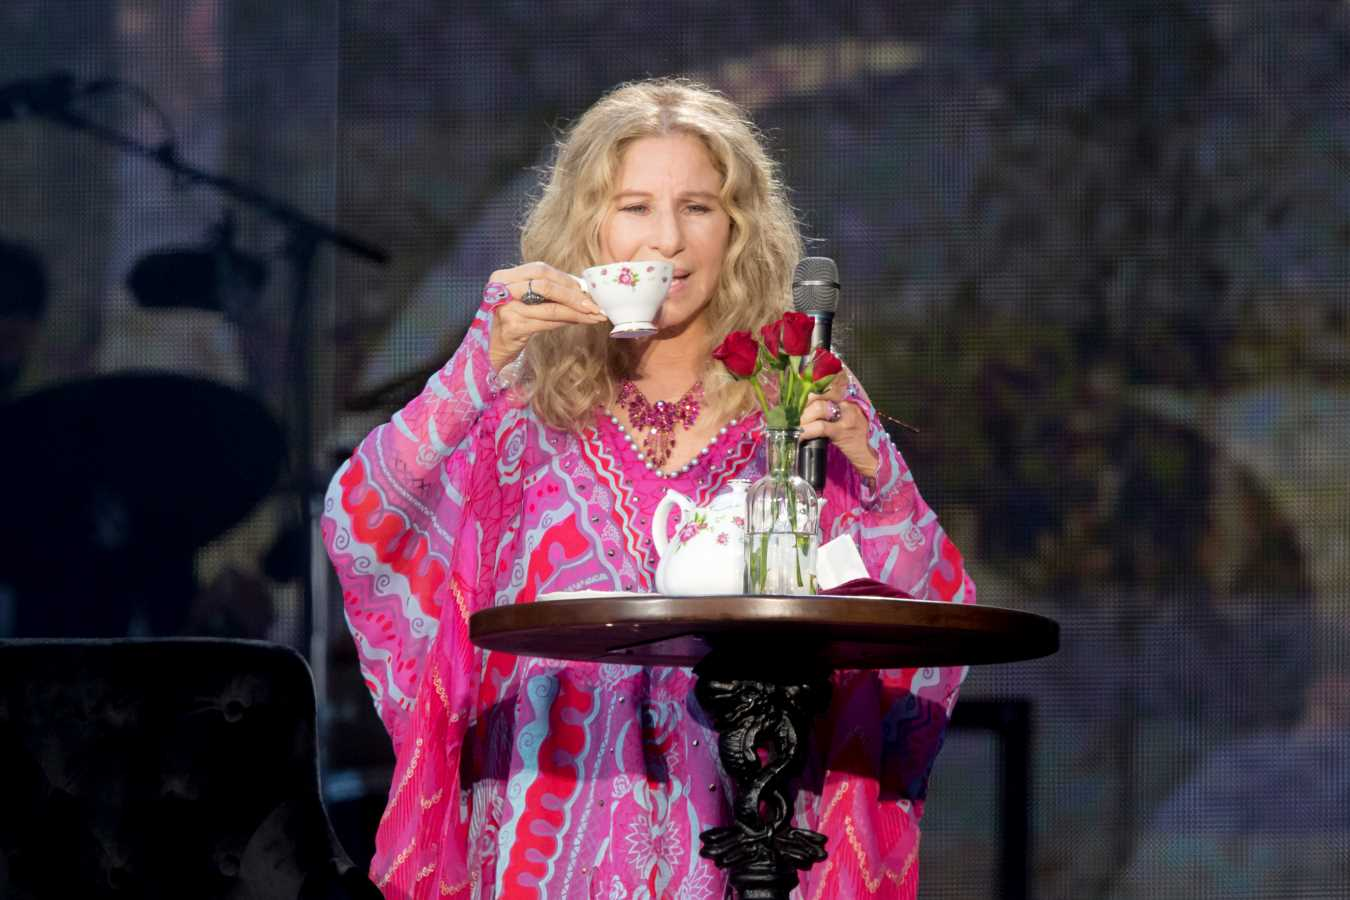 Barbra Streisand References Prince Charles Affair Rumors — and Sneaks Meghan Markle Into a Lyric